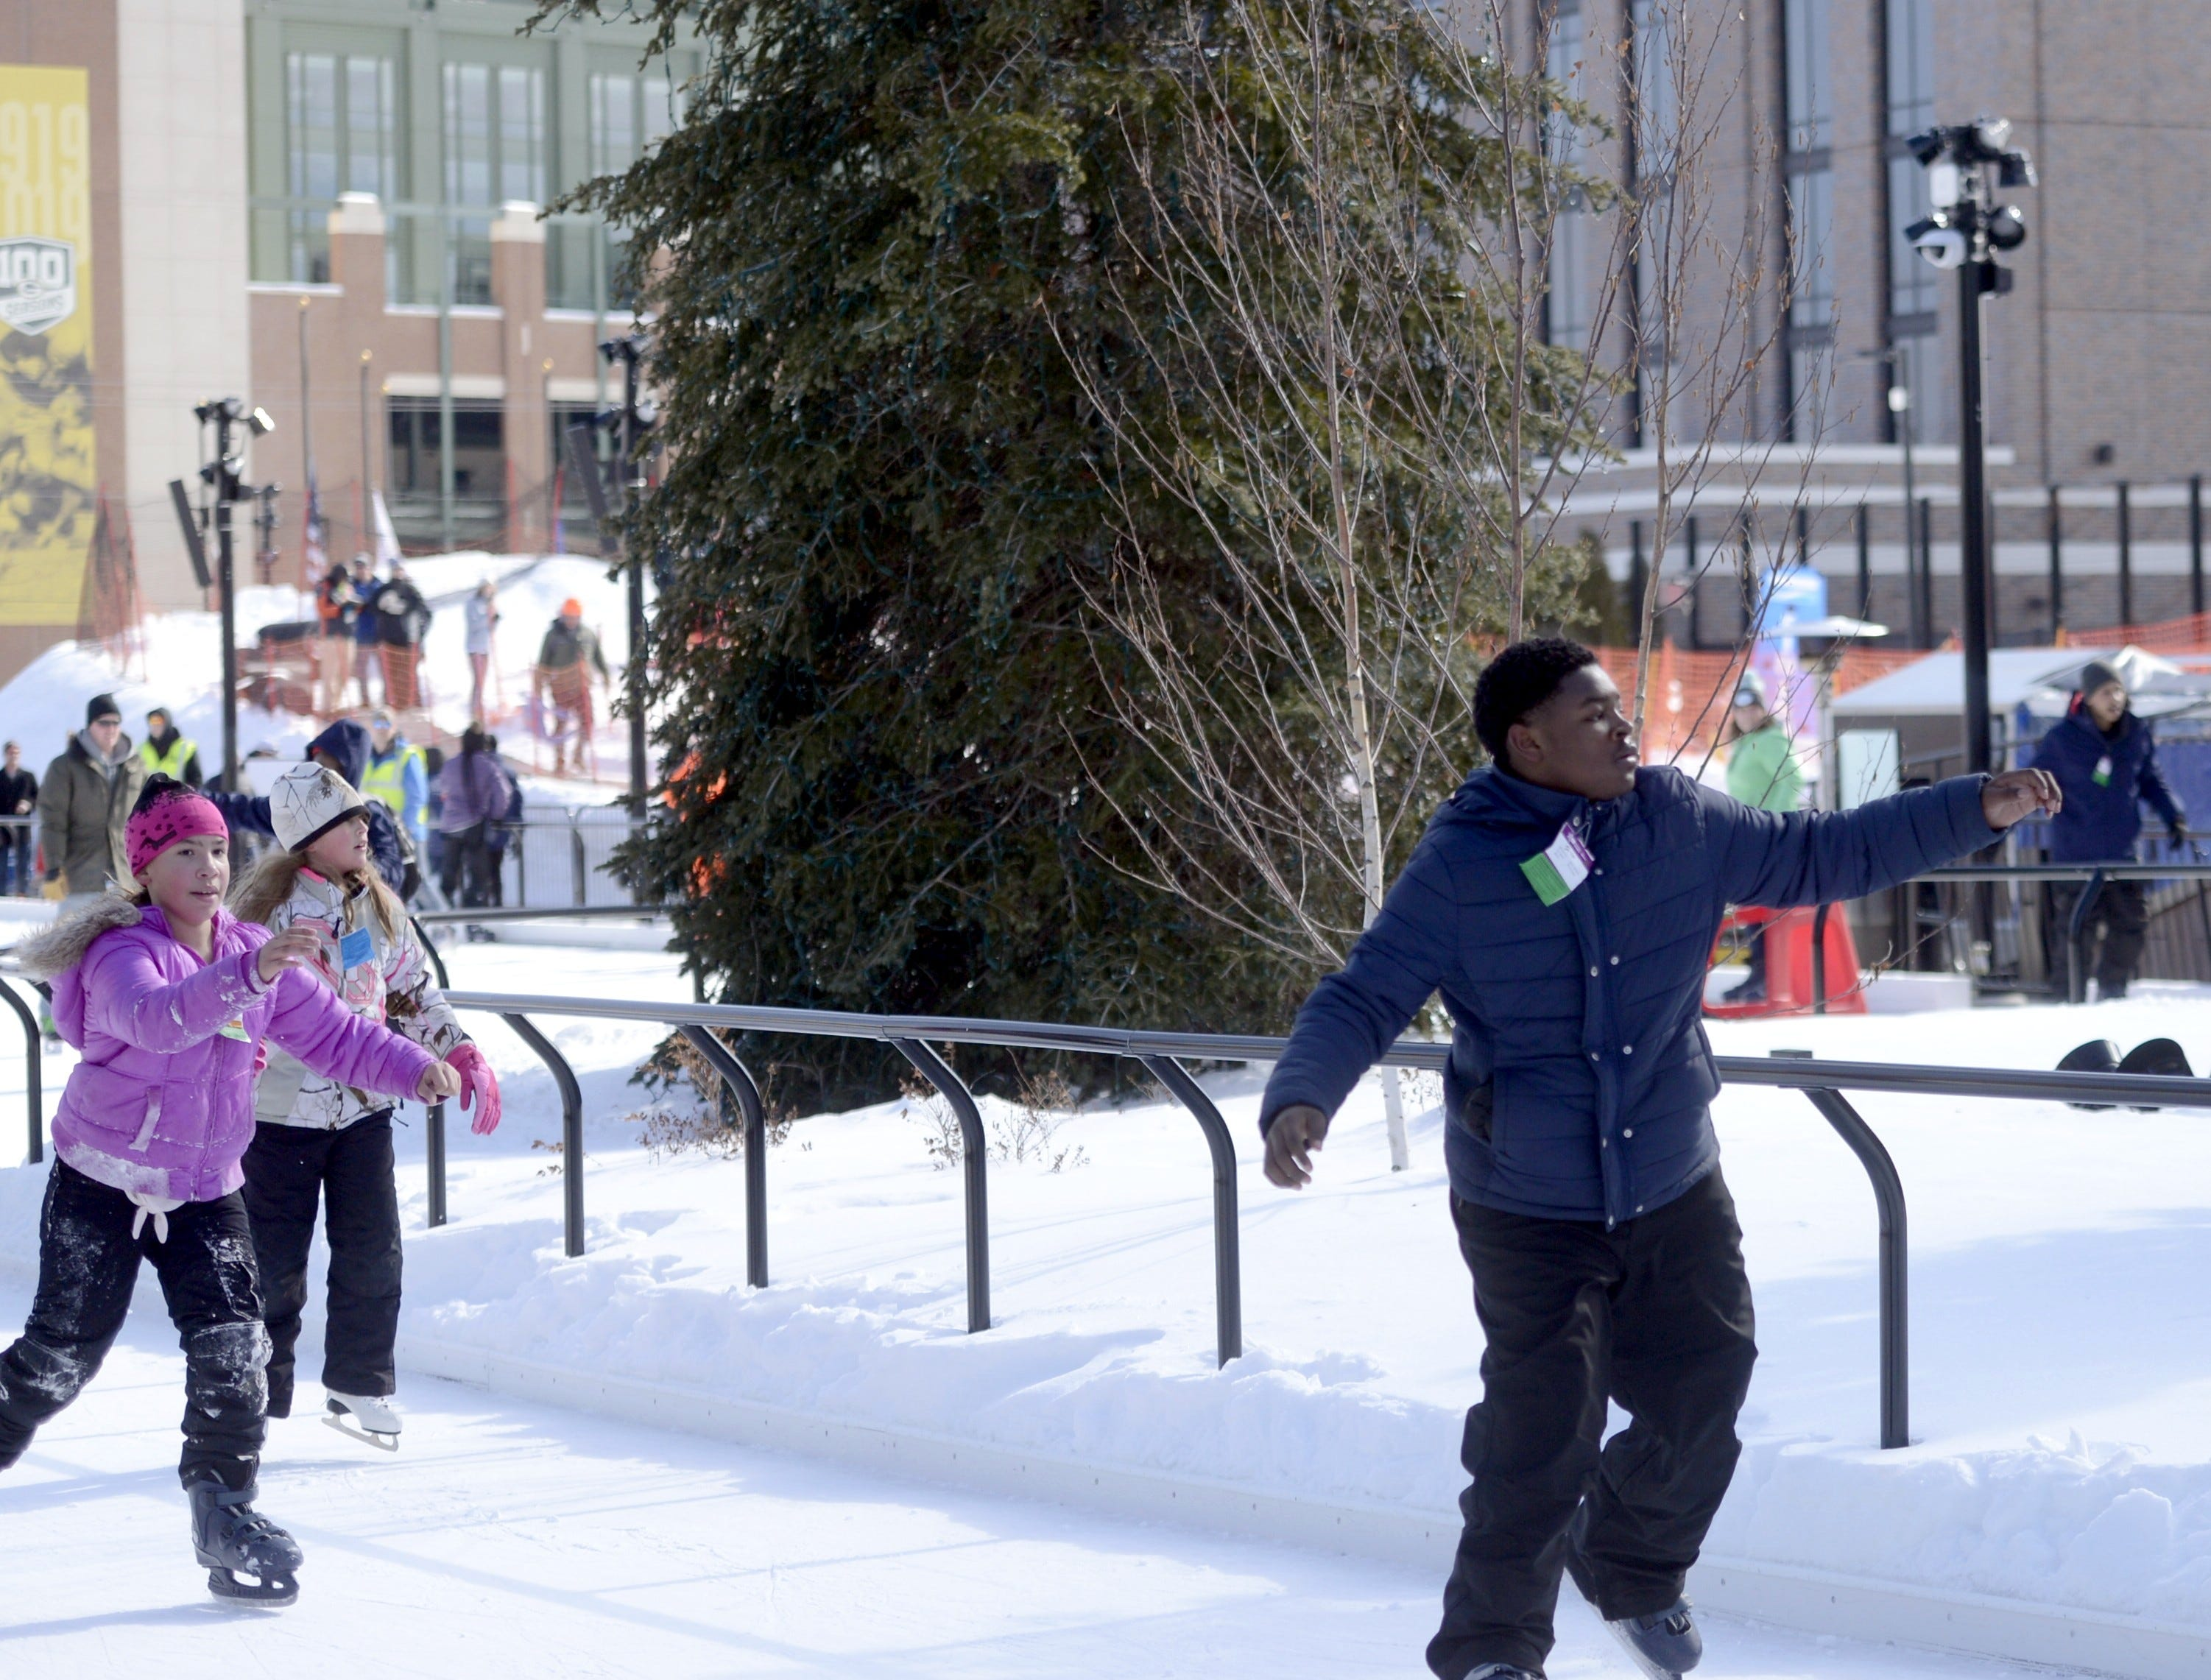 Skater on the Titletown ice rink, Saturday, Feb. 16, 2019